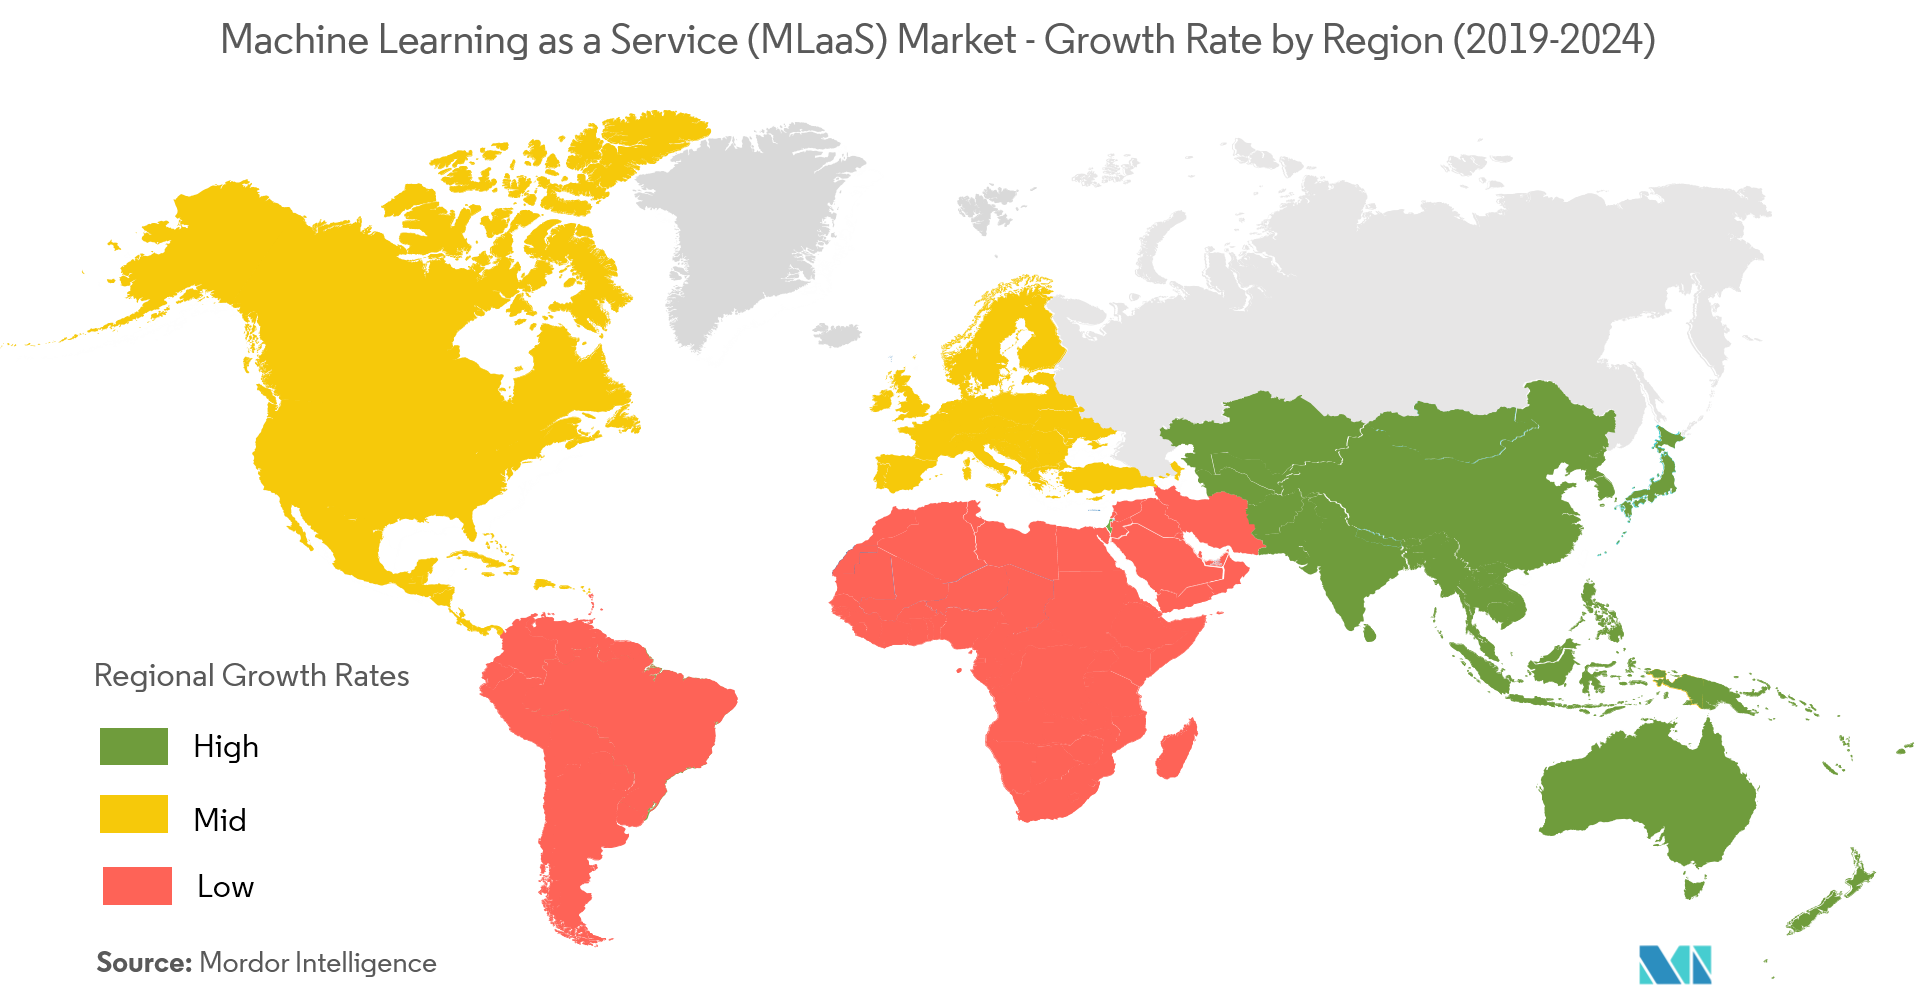 Machine Learning as a Service (MLaaS) Market Growth By Region